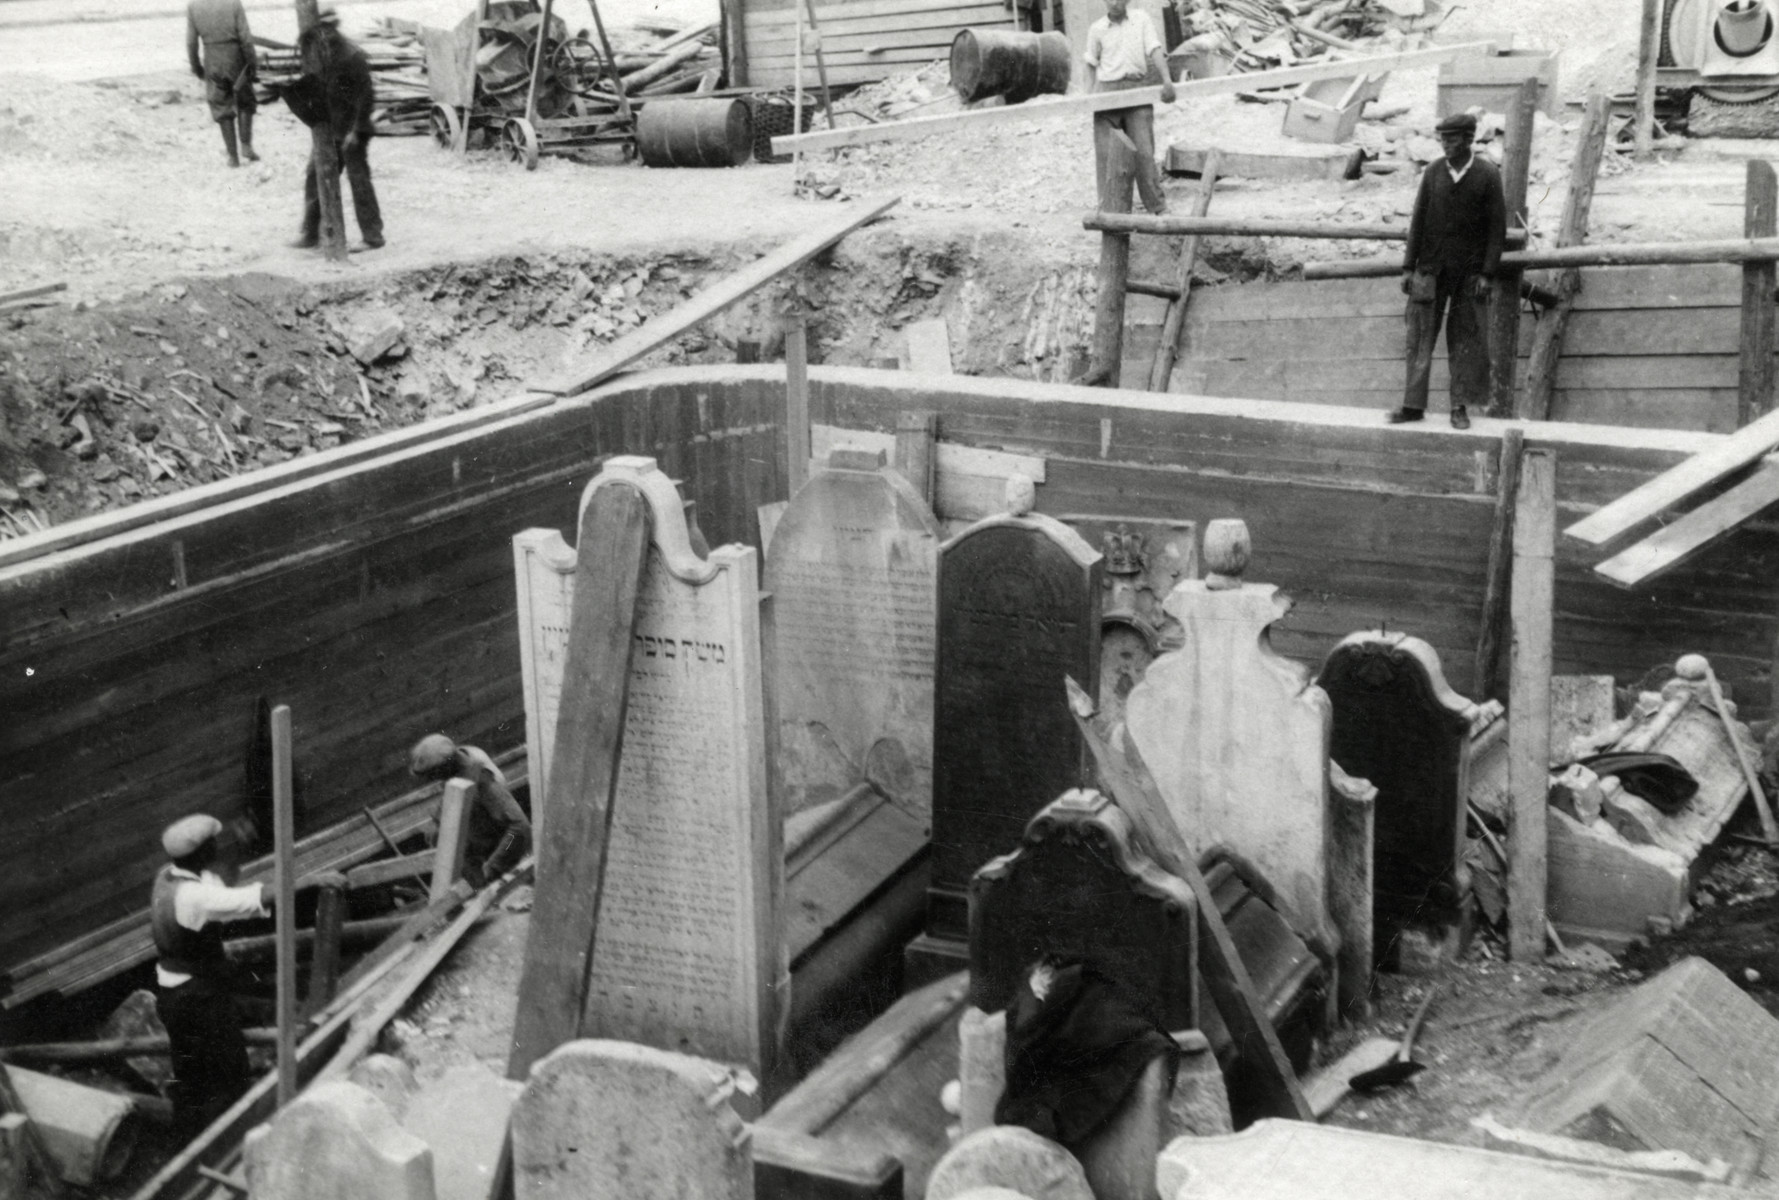 Slovak Jews relocate the tombstones and coffins from the old Jewish cemetery to new Orthodox cemetery farther from the city center.